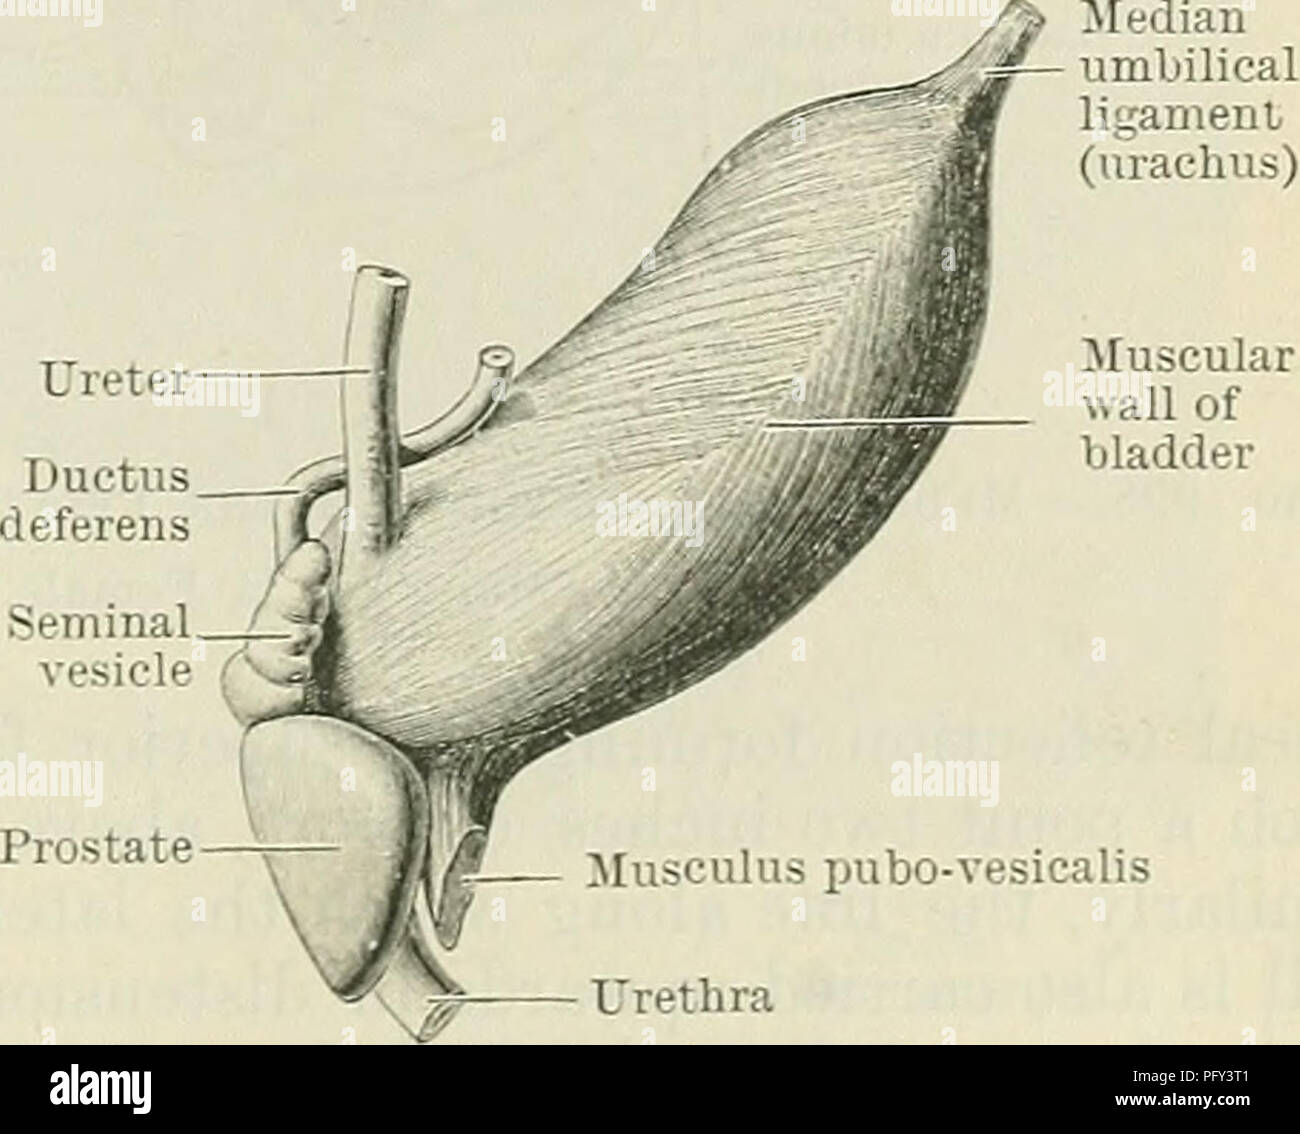 . Cunningham's Text-book of anatomy. Anatomy. Labium posterius (cervicis uteri) _ I Sphincter ani Ureter Muscular wall of bladder Fig. 996.—Median Section of the Pelvis in an Adult Female. The cavity of the uterus is indicated diagraniniatically. bladder is spindle- or torpedo-shaped, and its long axis, which extends from the point of attachment of the urachus to the internal urethral orifice, is directed downwards and backwards (Fig. 997). The lateral and posterior borders seen in the adult organ cannot be recognised at birth, nor is there any part of the bladder wall directed downwards and b - Stock Image